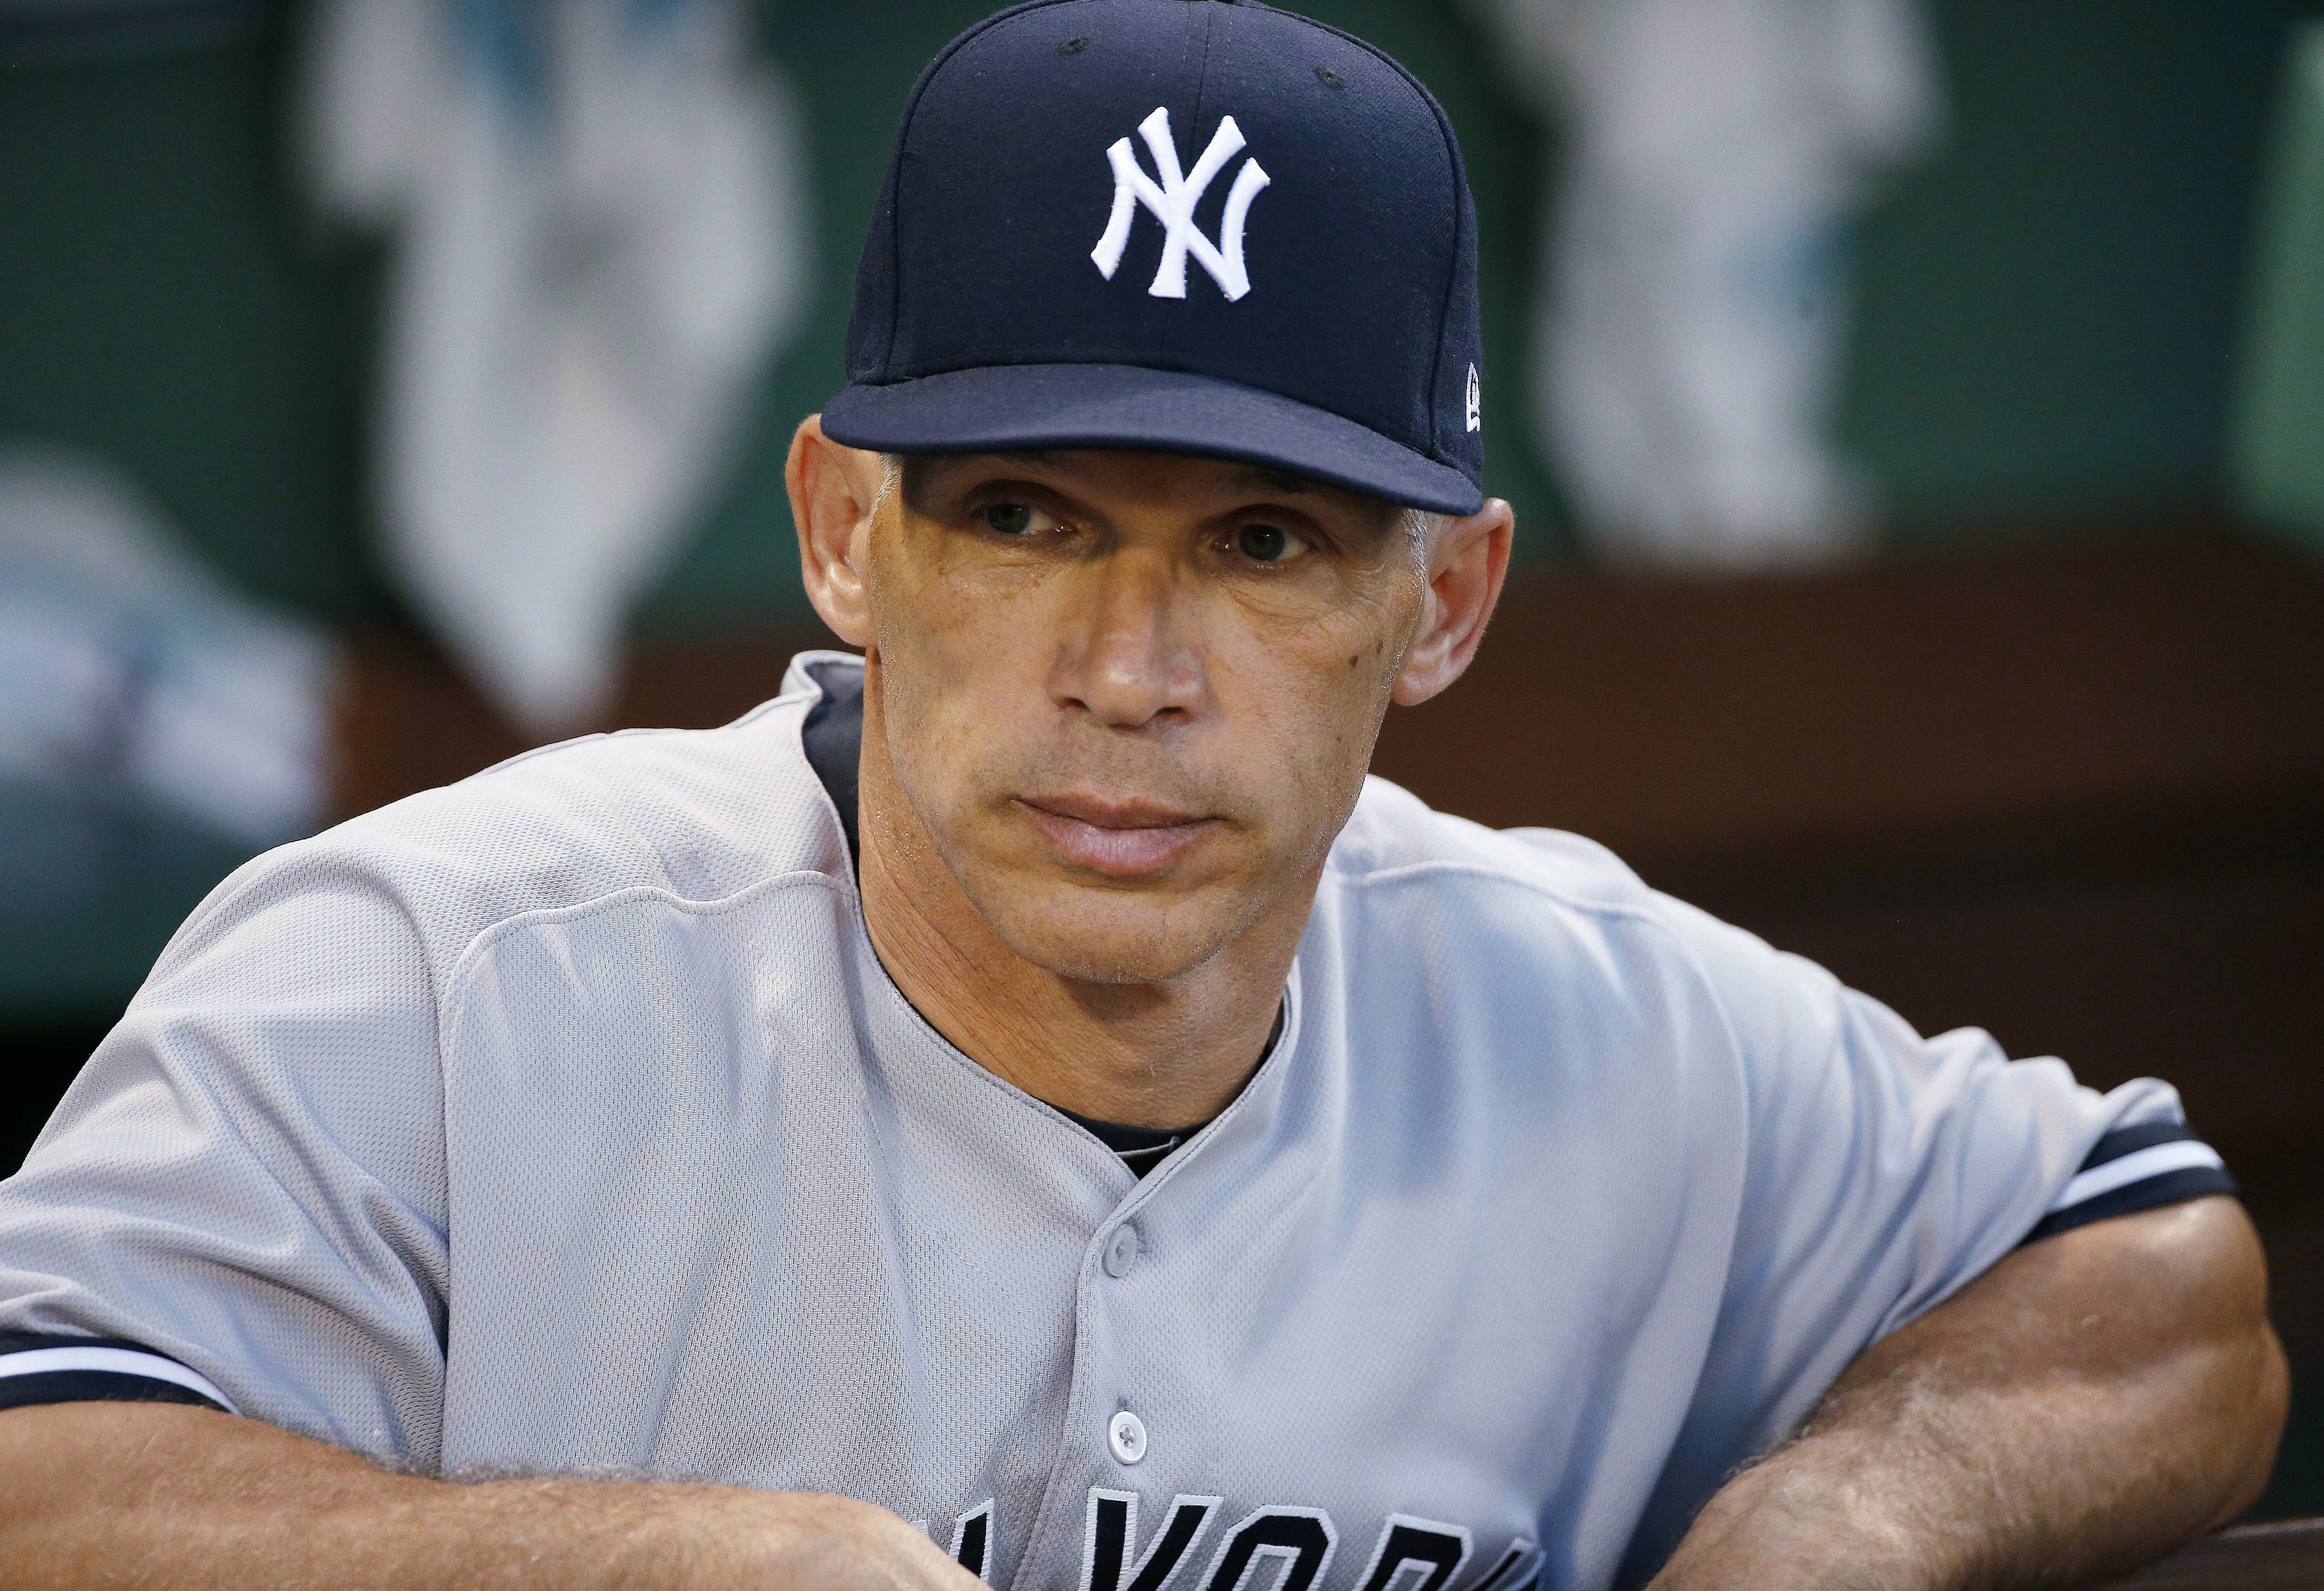 MLB rumors: Here's when ex-Yankees manager Joe Girardi will interview with the Mets